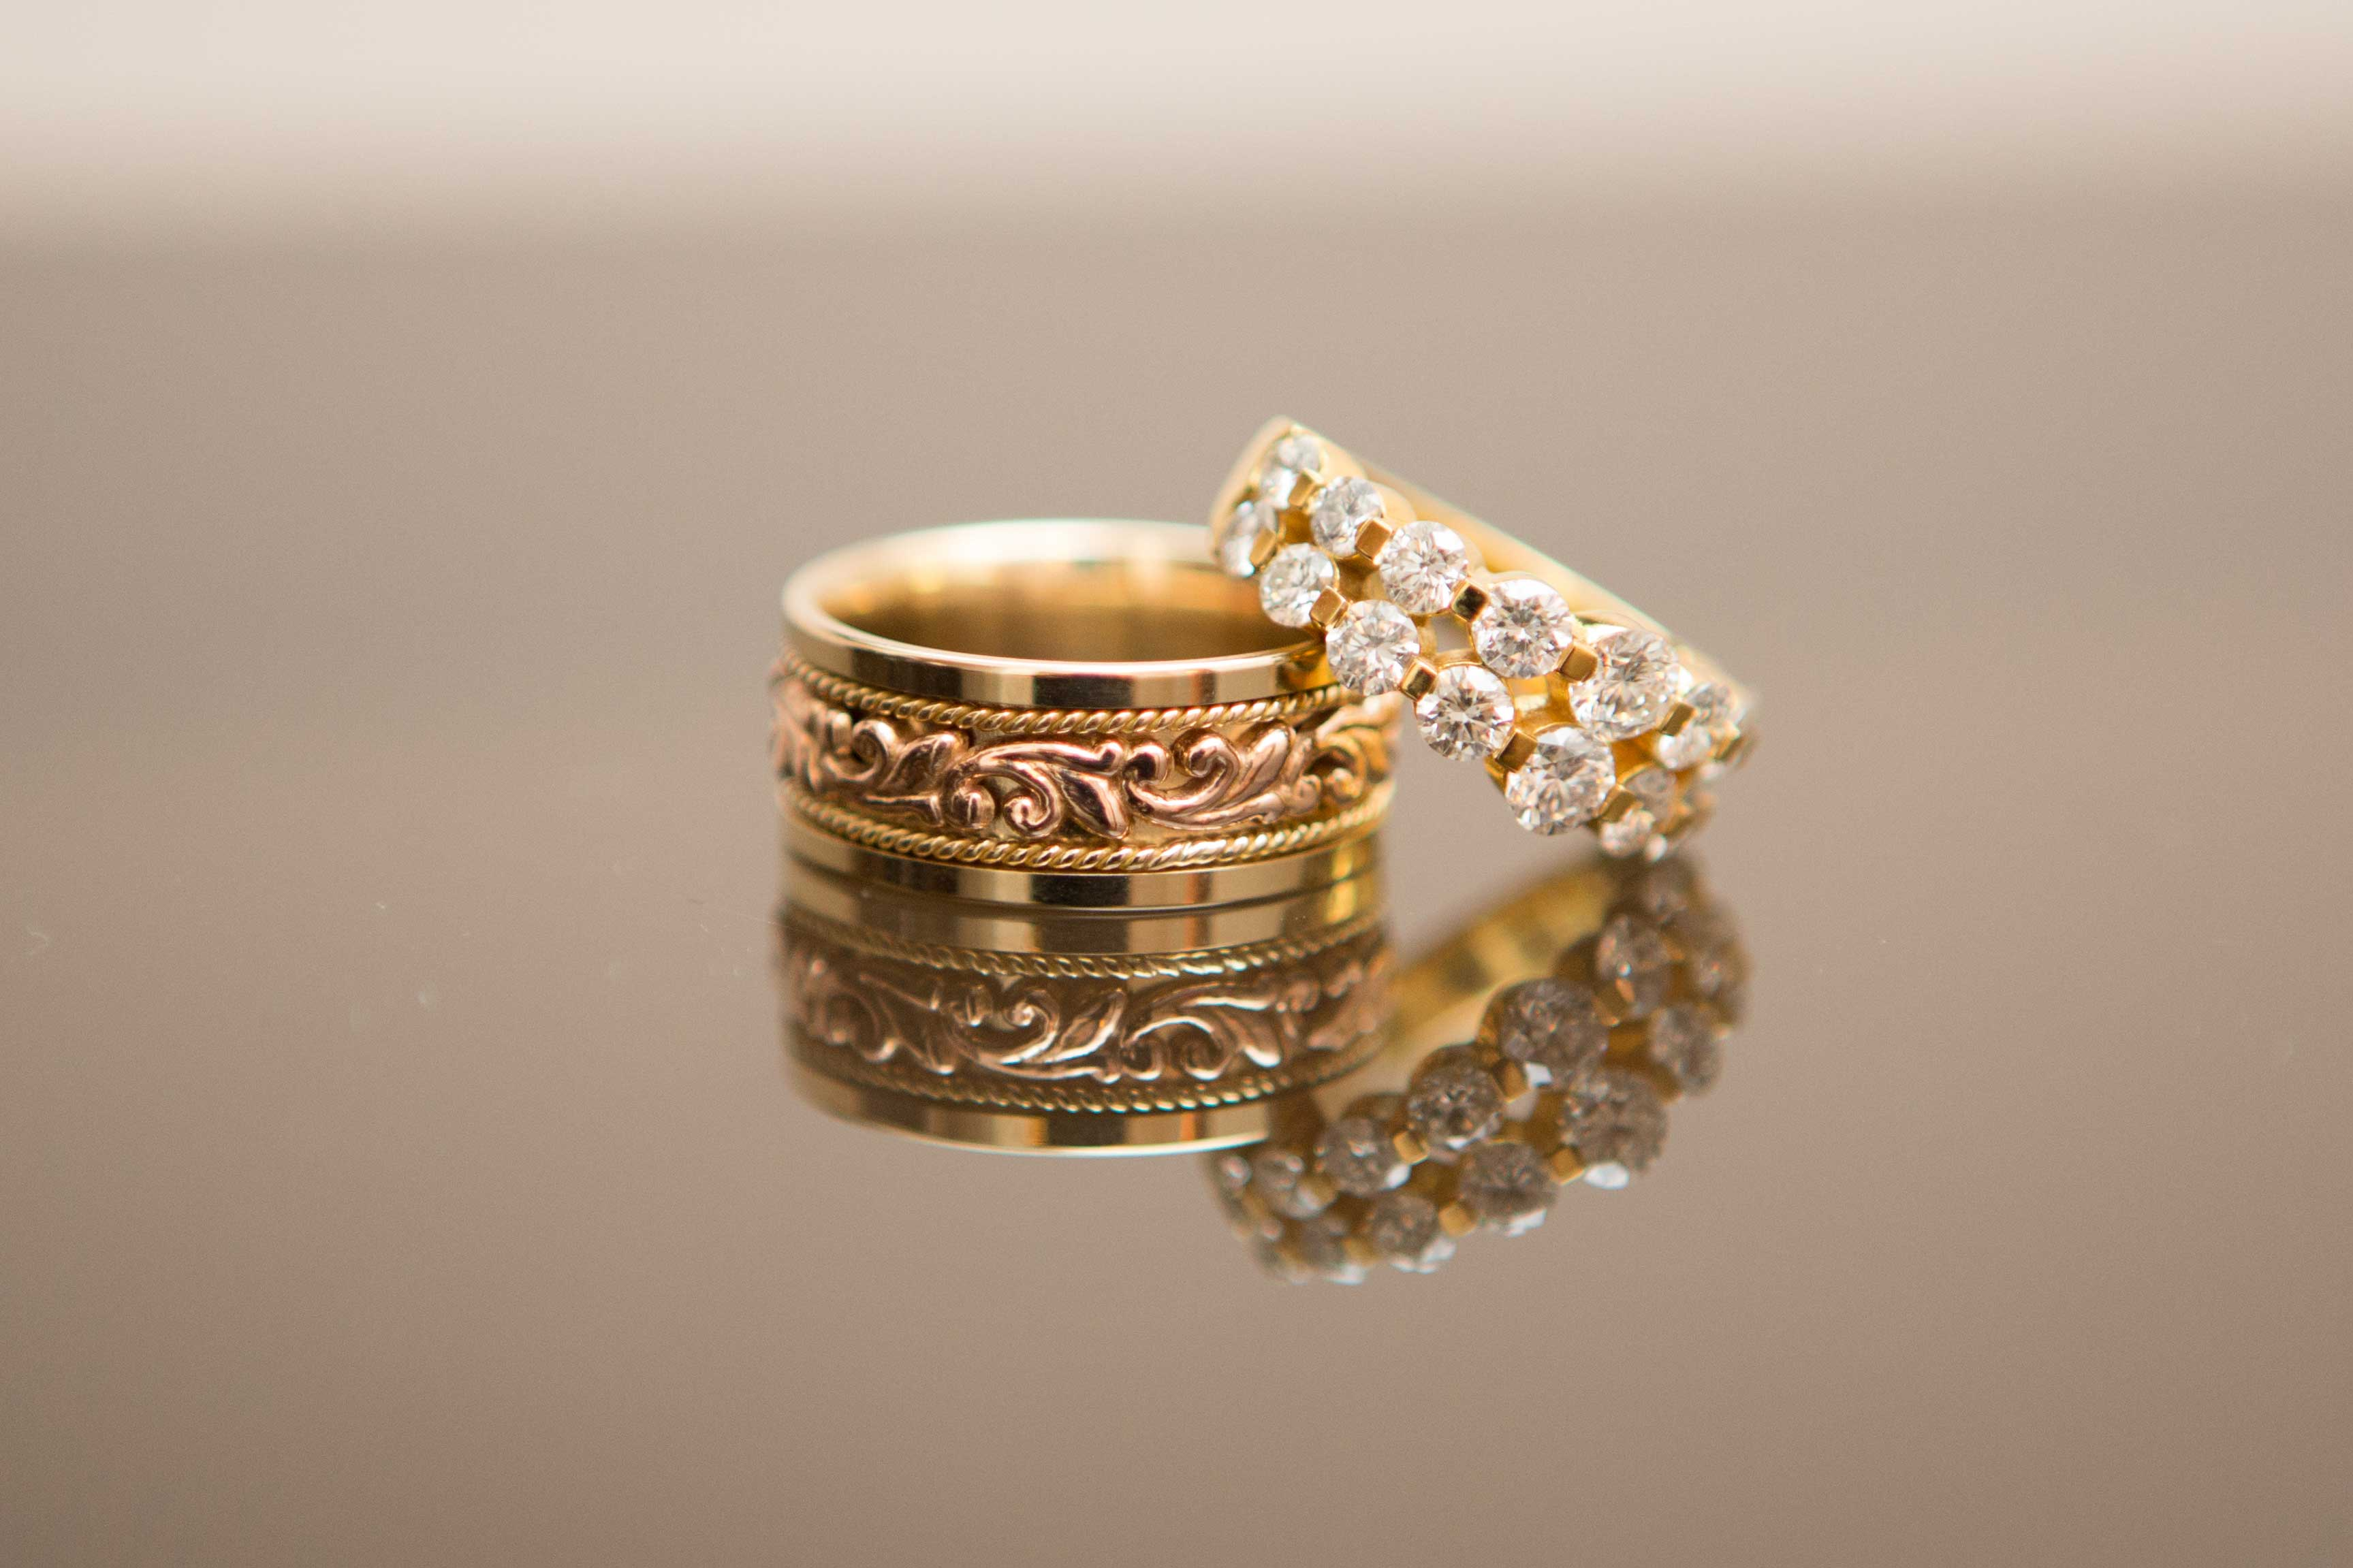 yellow gold and rose gold grooms wedding ring with scrollwork detail - Grooms Wedding Ring